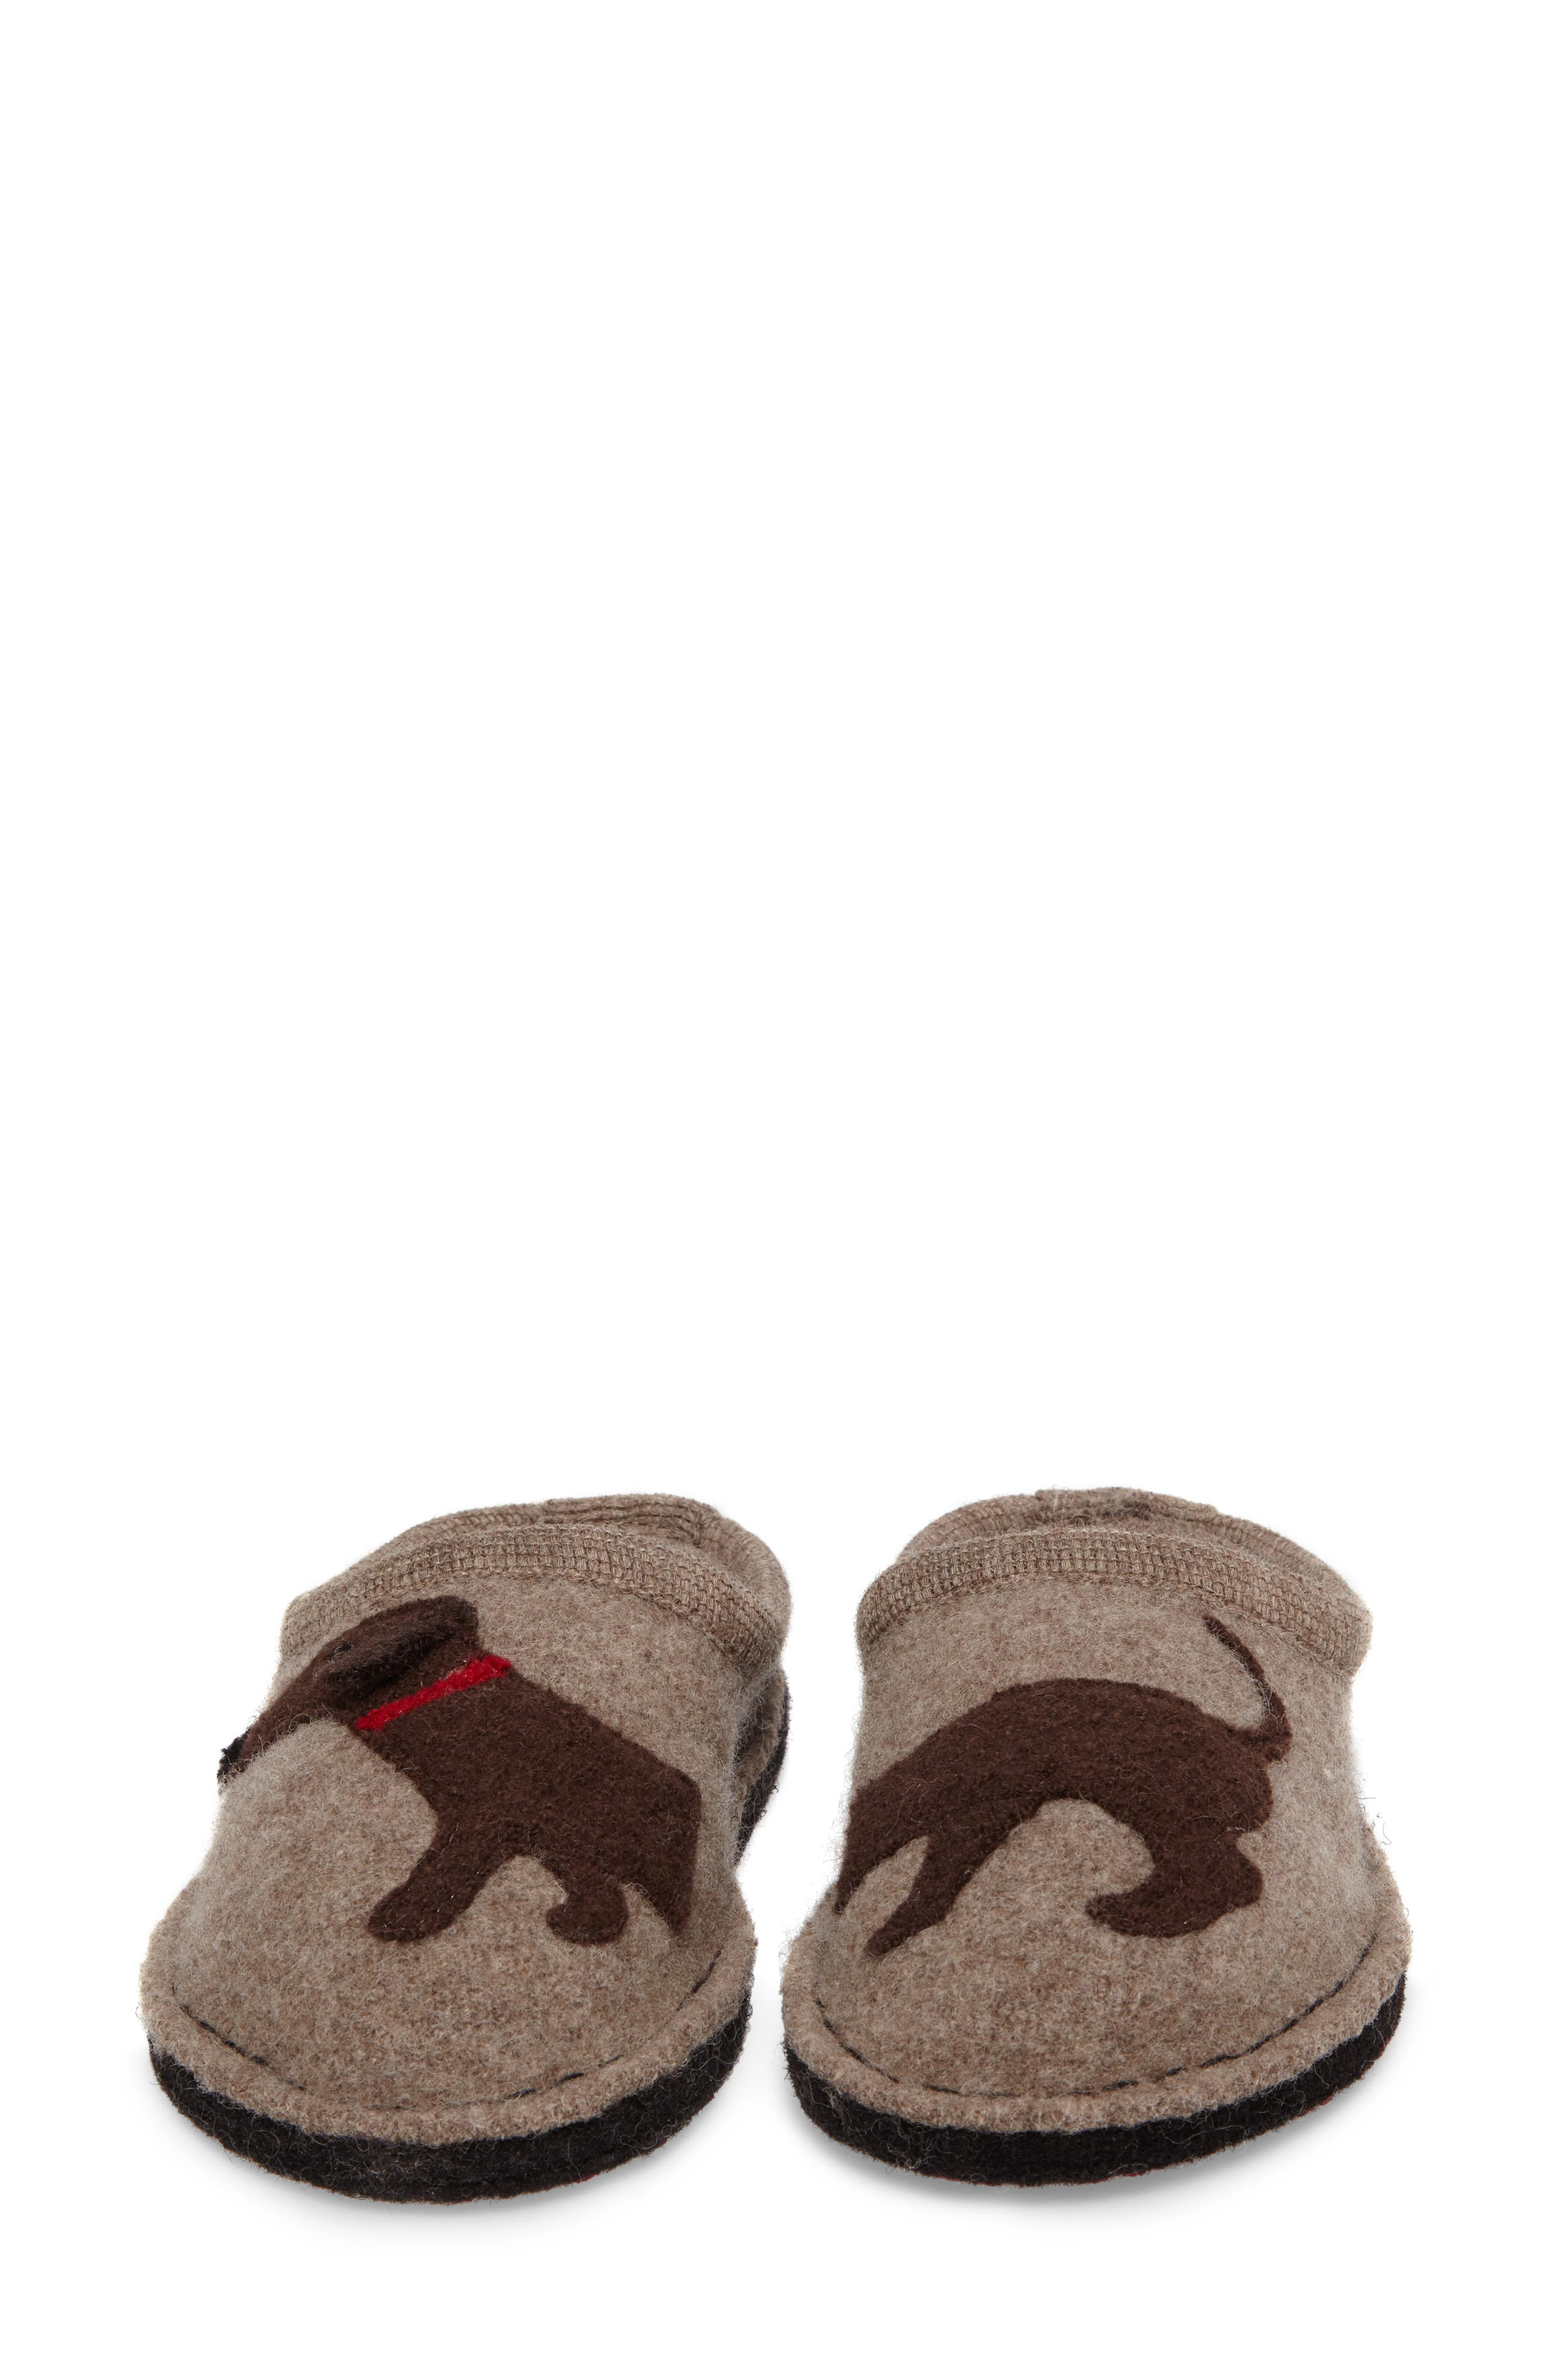 'Doggy' Slipper,                             Alternate thumbnail 6, color,                             EARTH